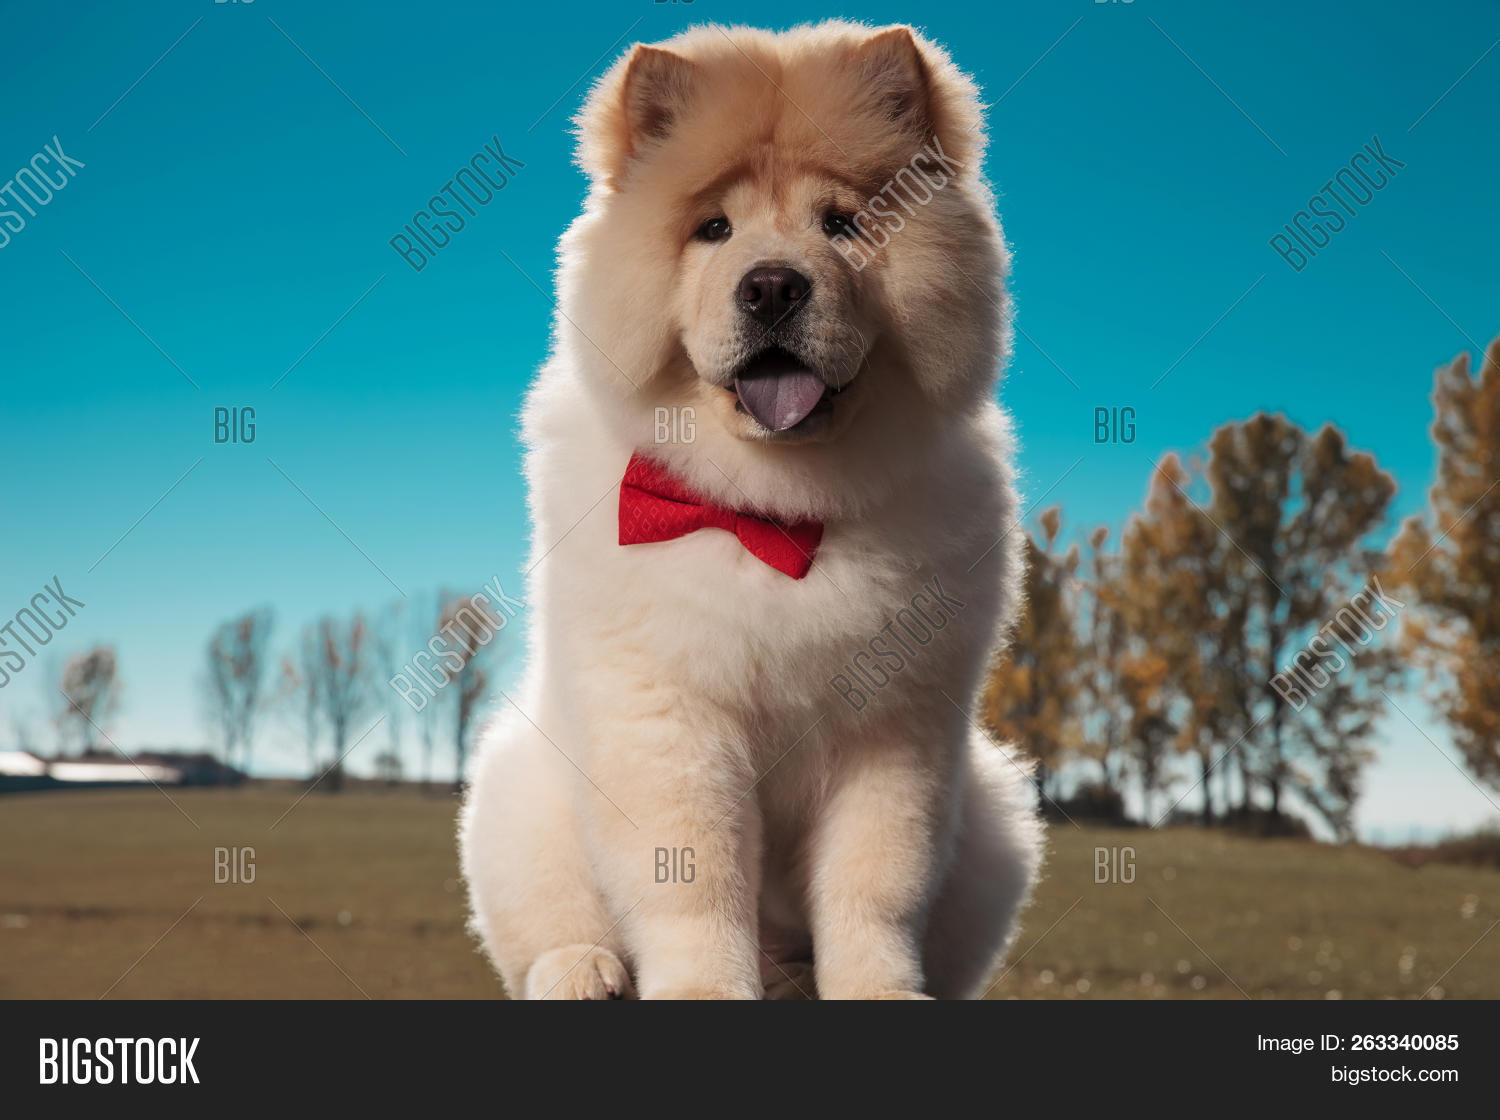 Cute Chow Chow Puppy Image Photo Free Trial Bigstock